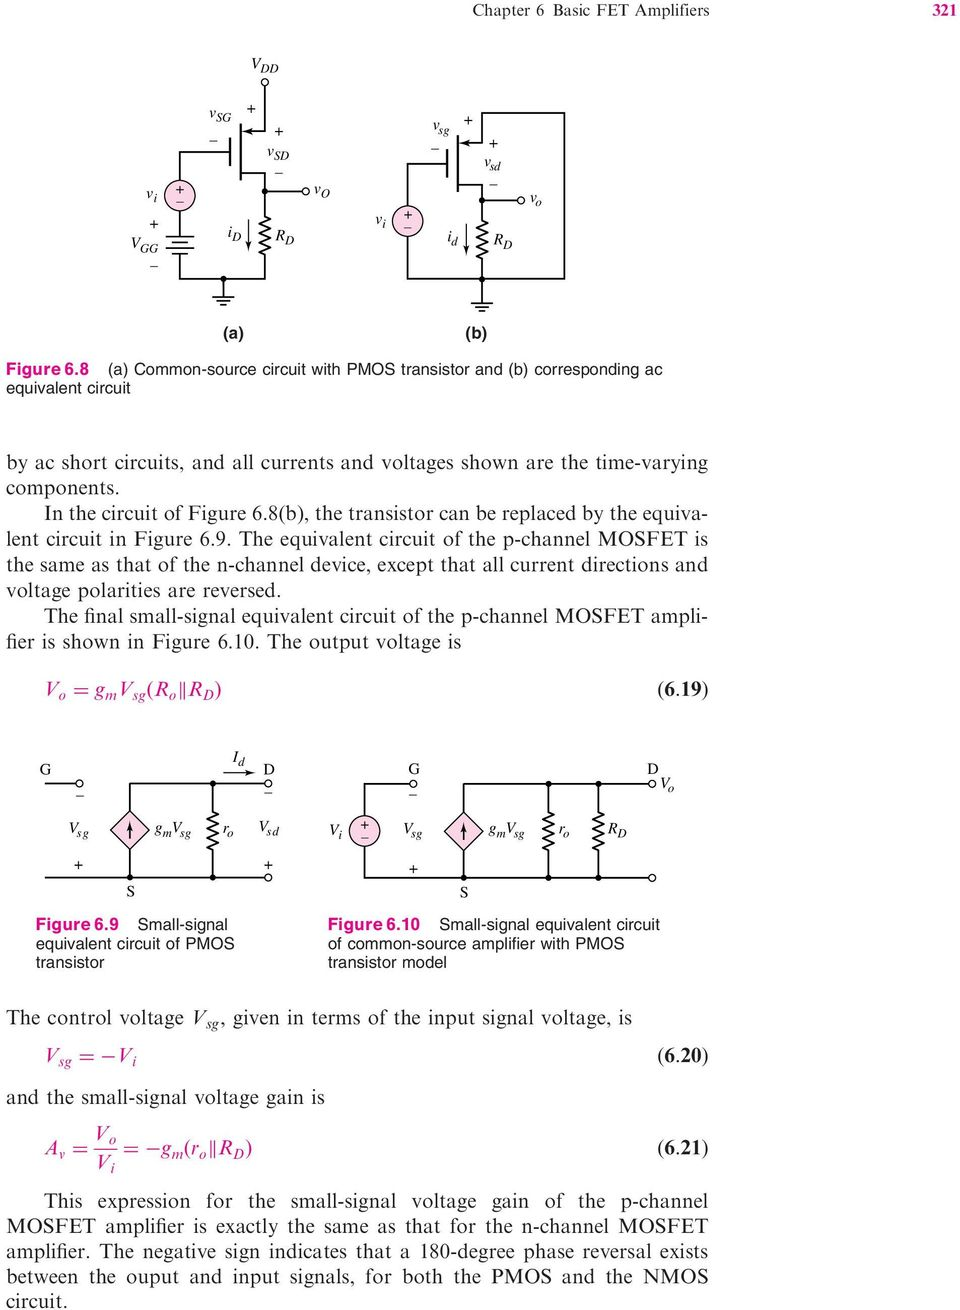 Basic Fet Ampli Ers 60 Preview 61 The Mosfet Amplifier Pdf Tutorial Circuits Field Effect Transistor In Circuit Of Figure 68b Can Be Replaced By